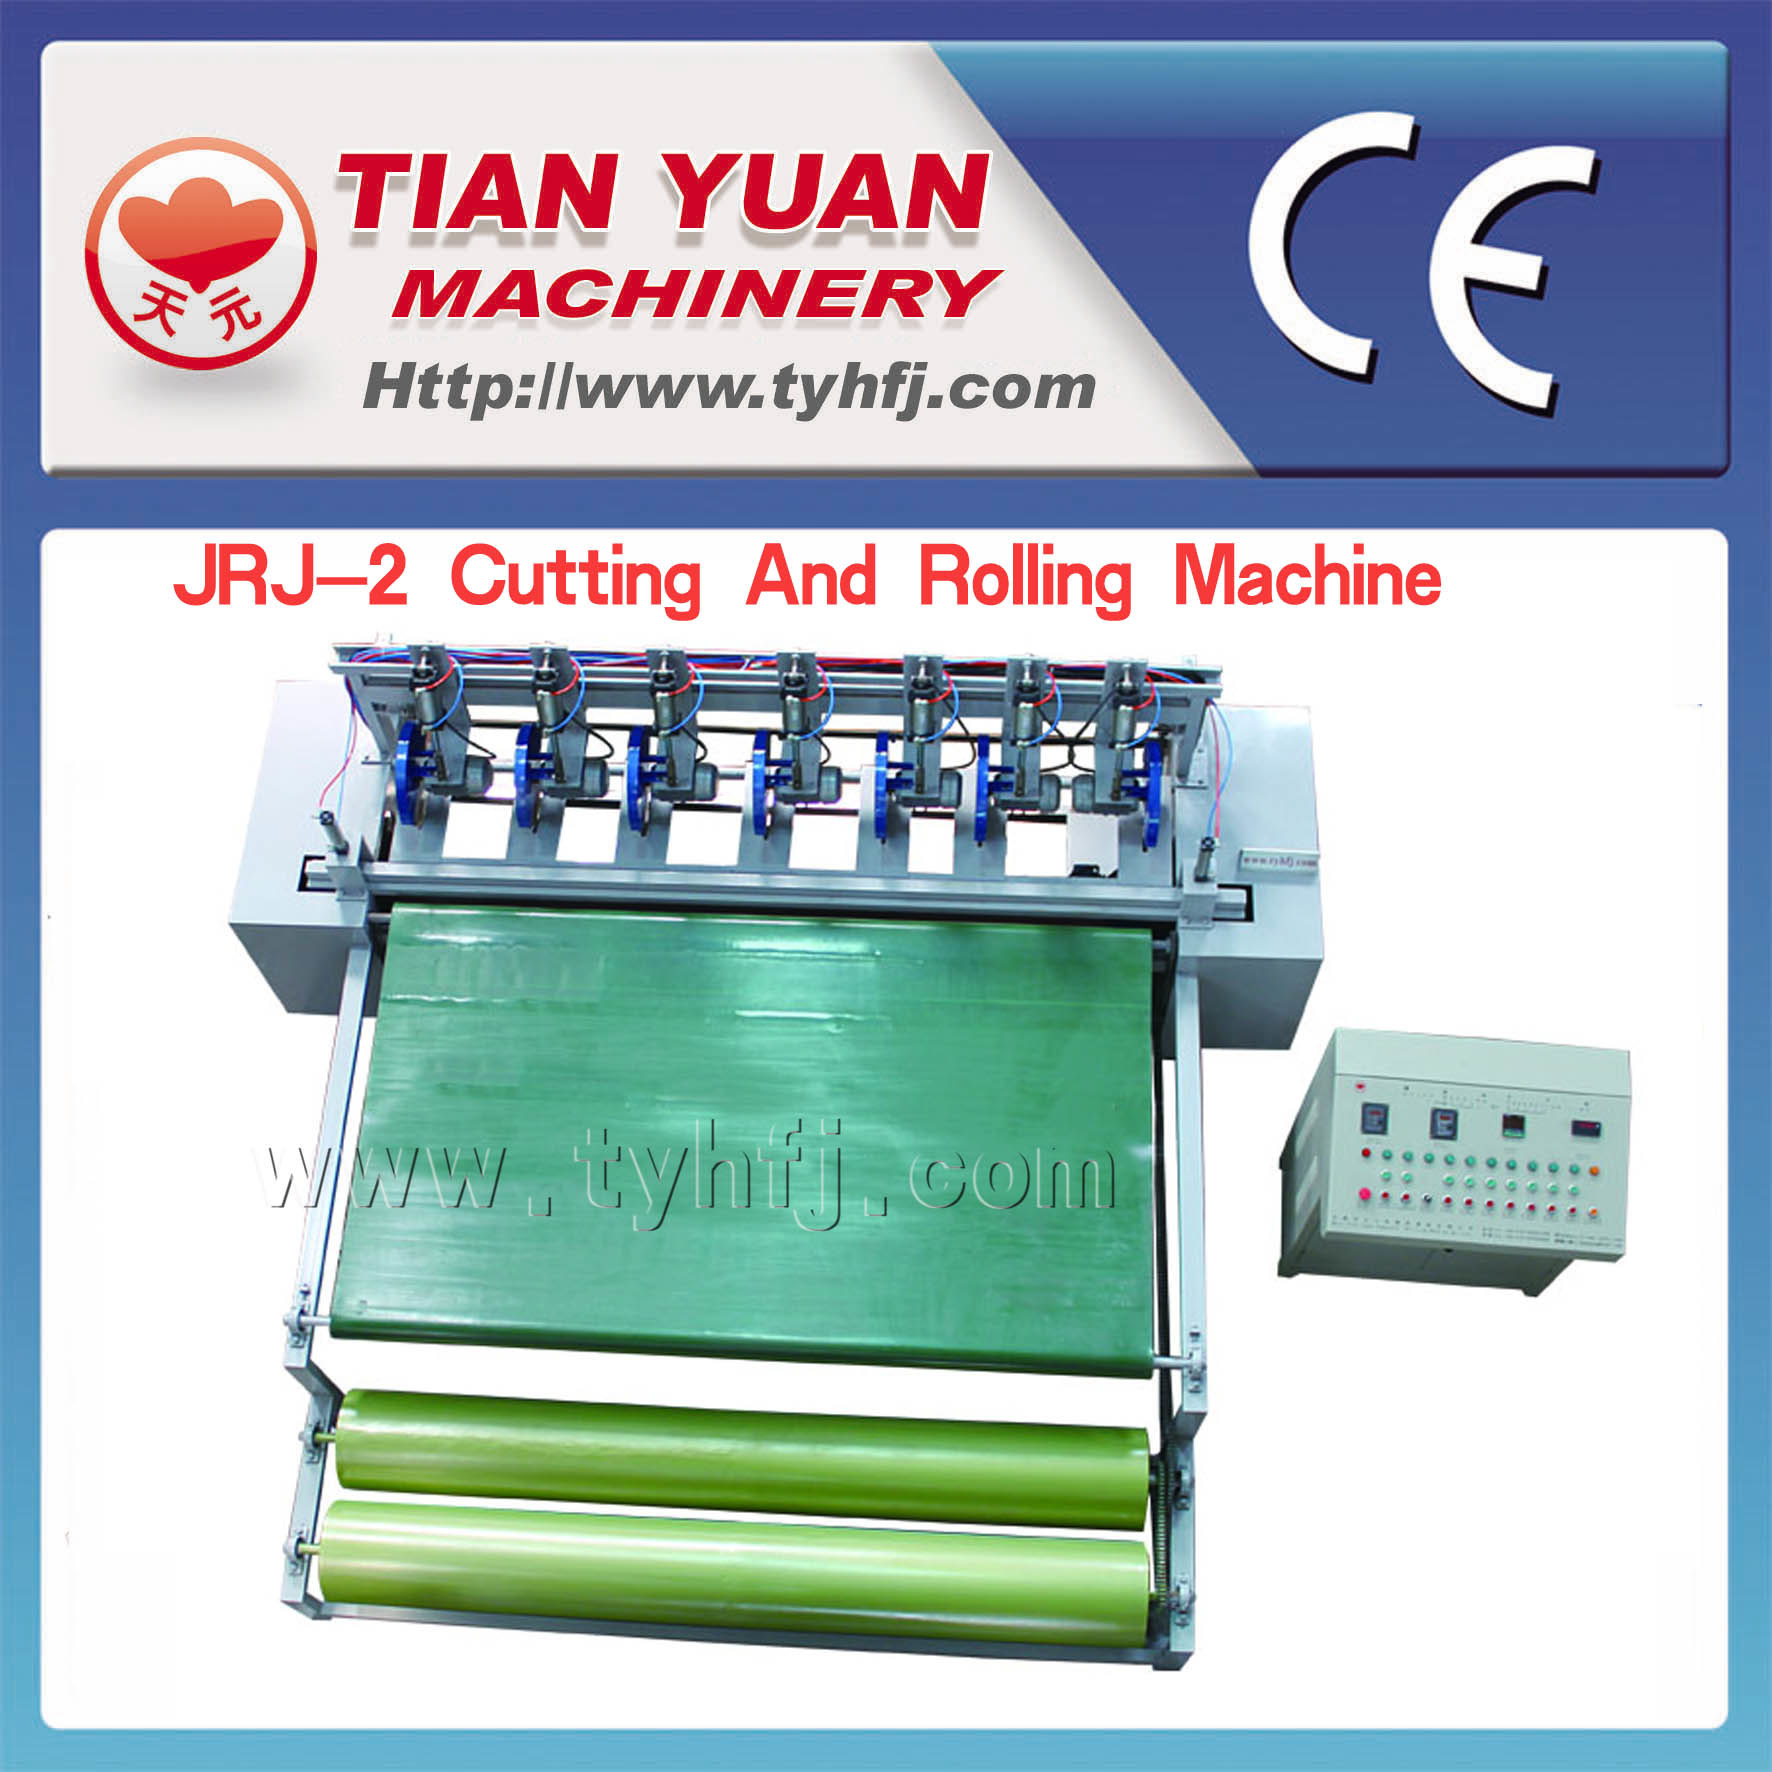 Stiff Wadding Cutting and Coiling Machine (JRJ-2)